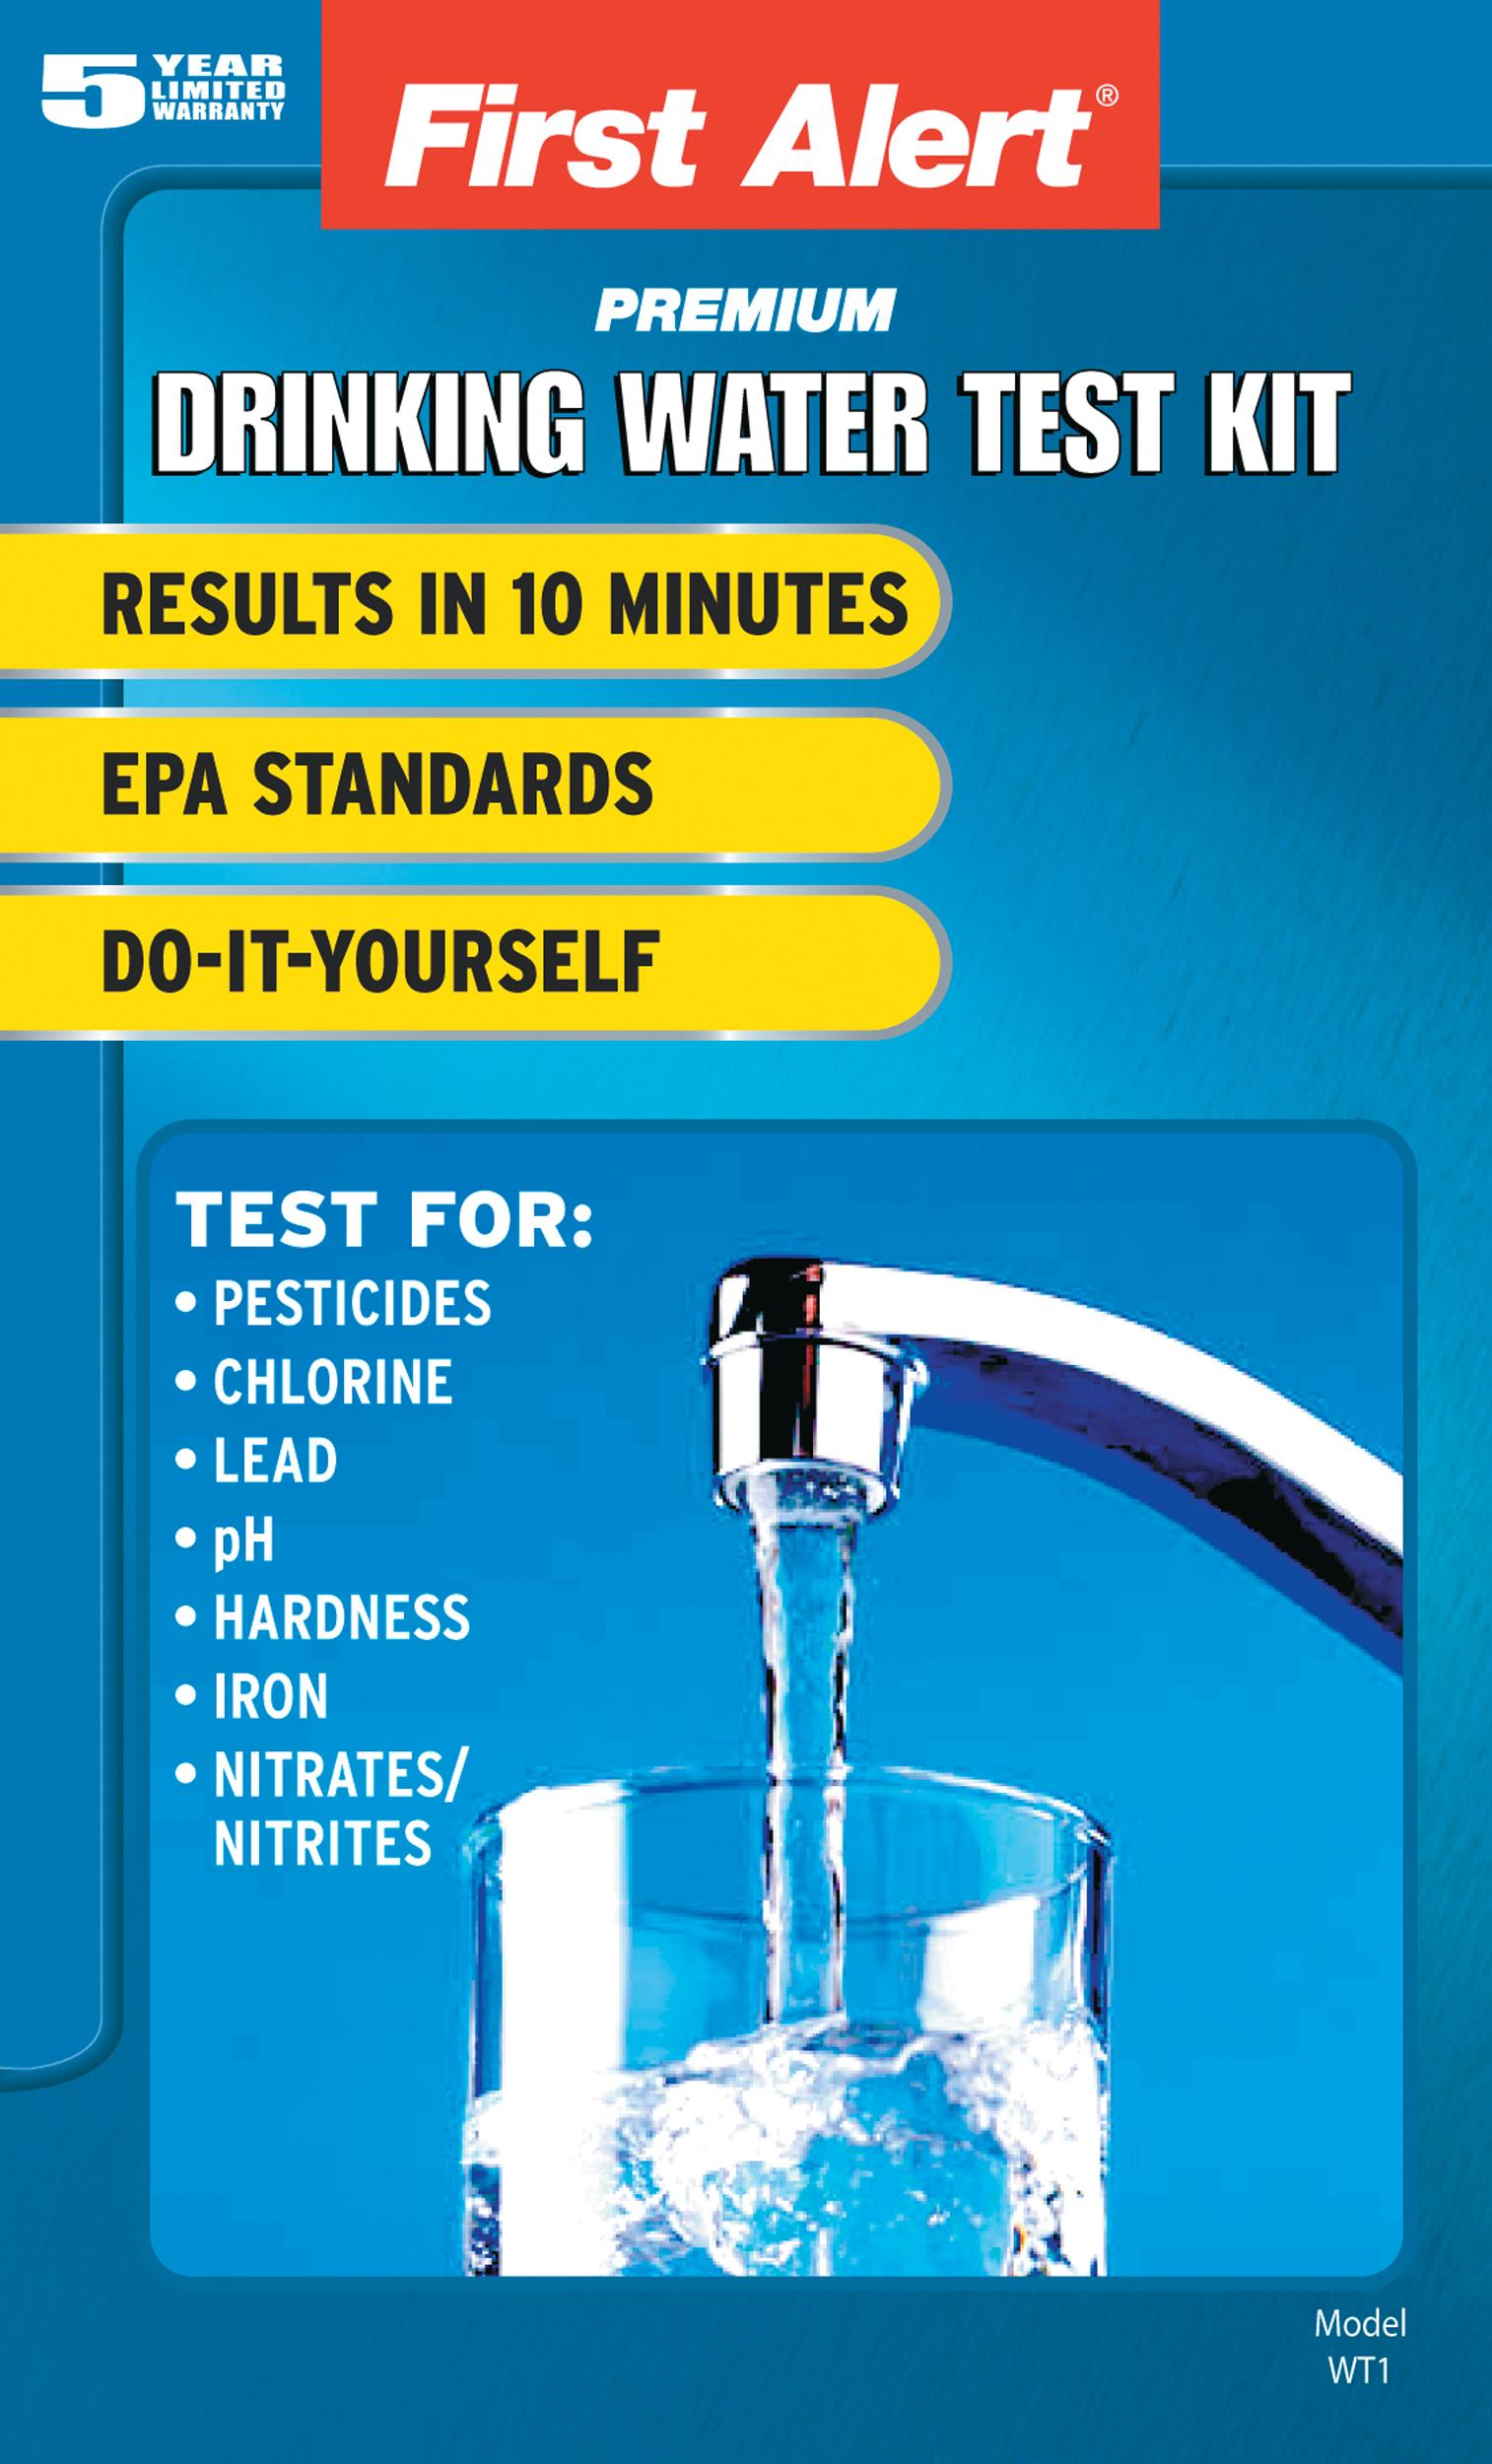 Contact Information for Certification Programs and Certified Laboratories for Drinking Water